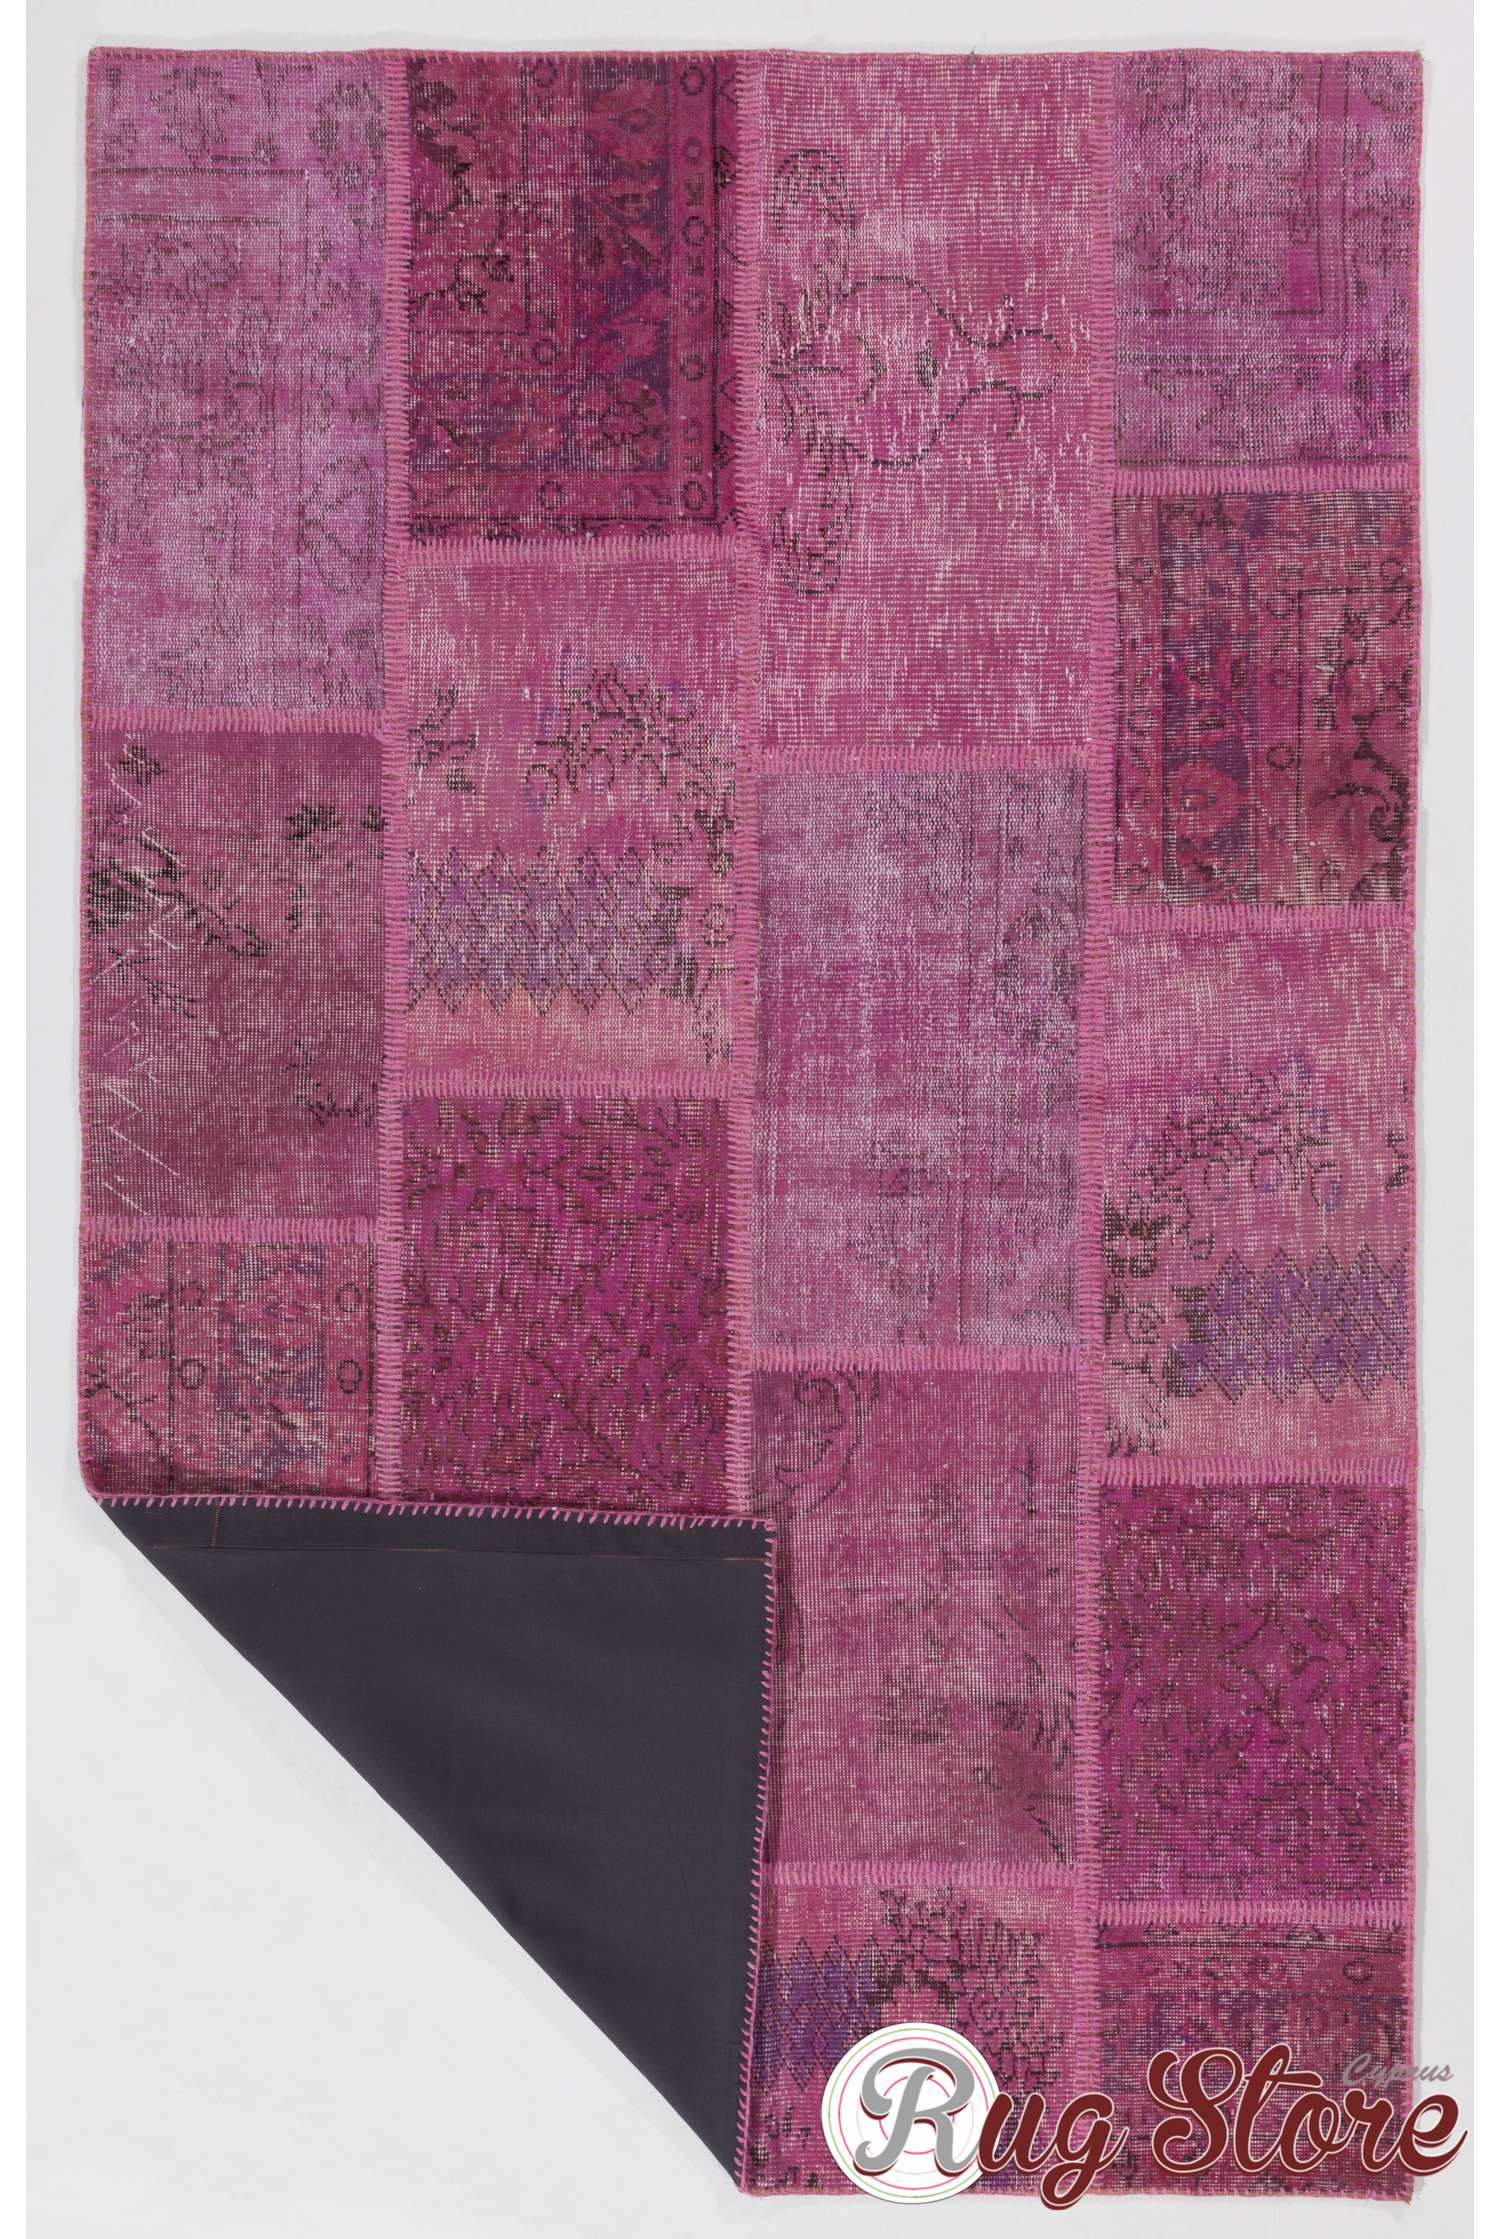 152x245 Cm Light Pink Patchwork Rug Handmade From Overdyed